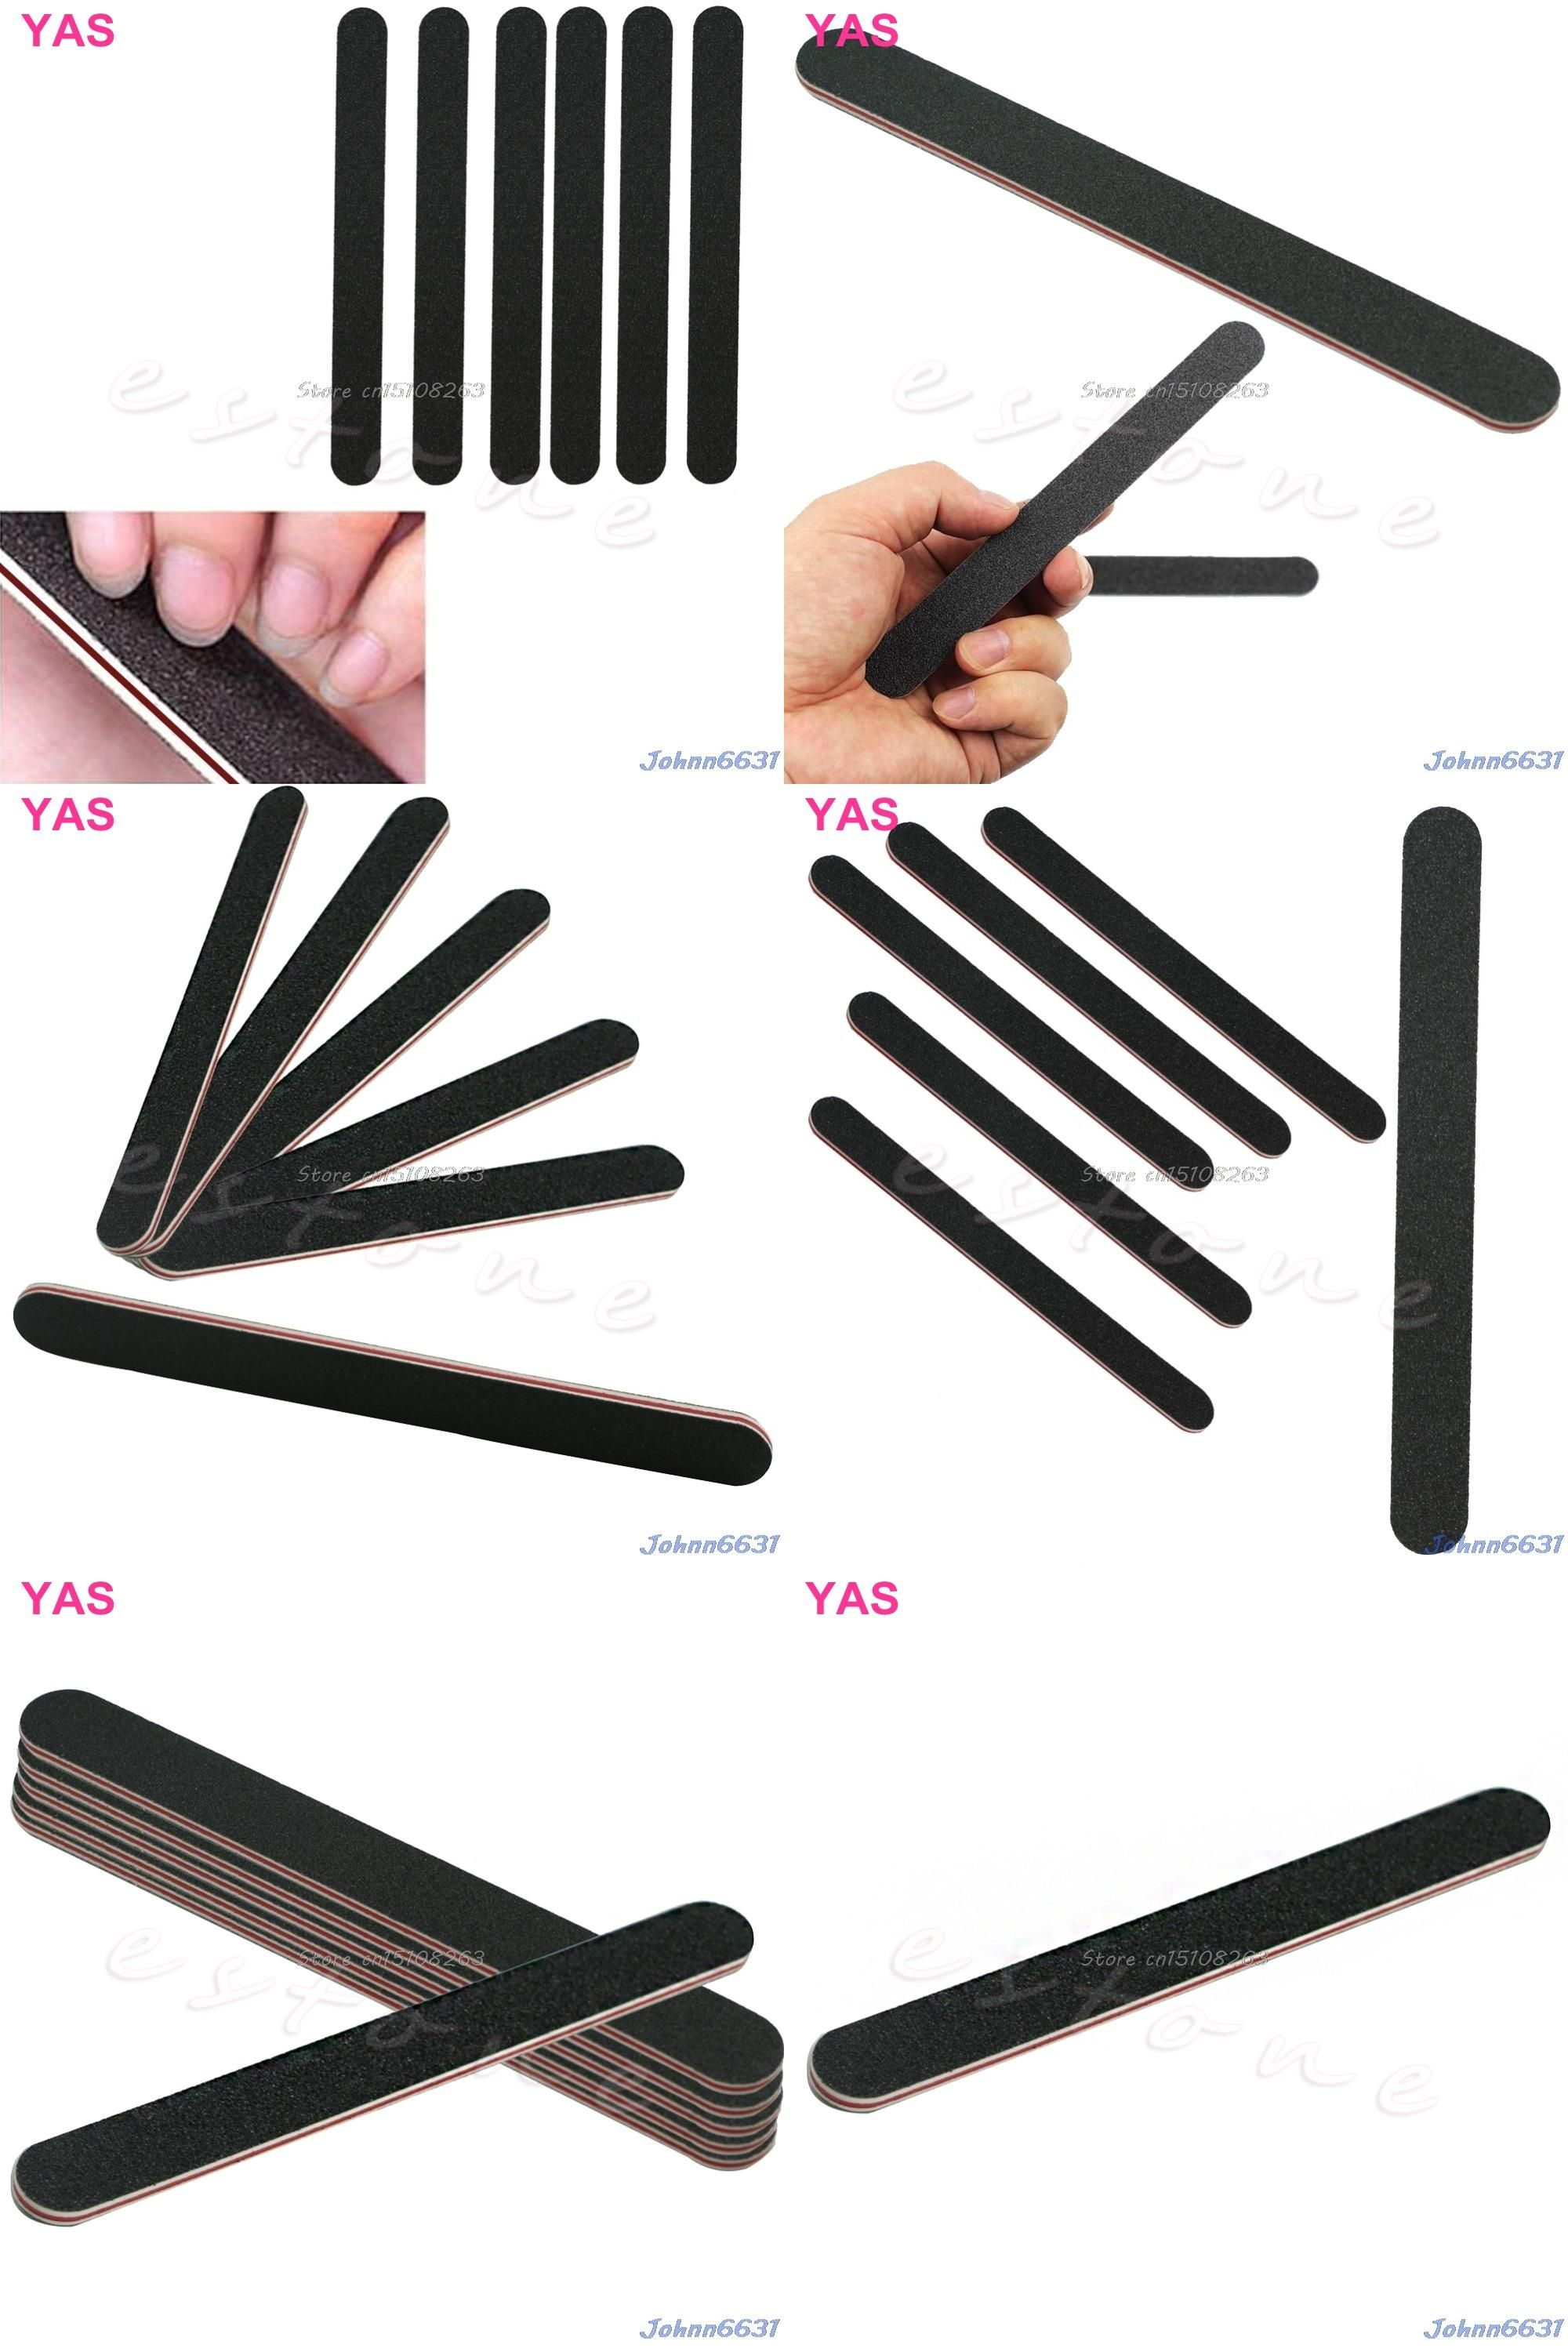 Visit to Buy] 10Pcs Double Sided 180/100 Grit STRAIGHT Nail Files ...